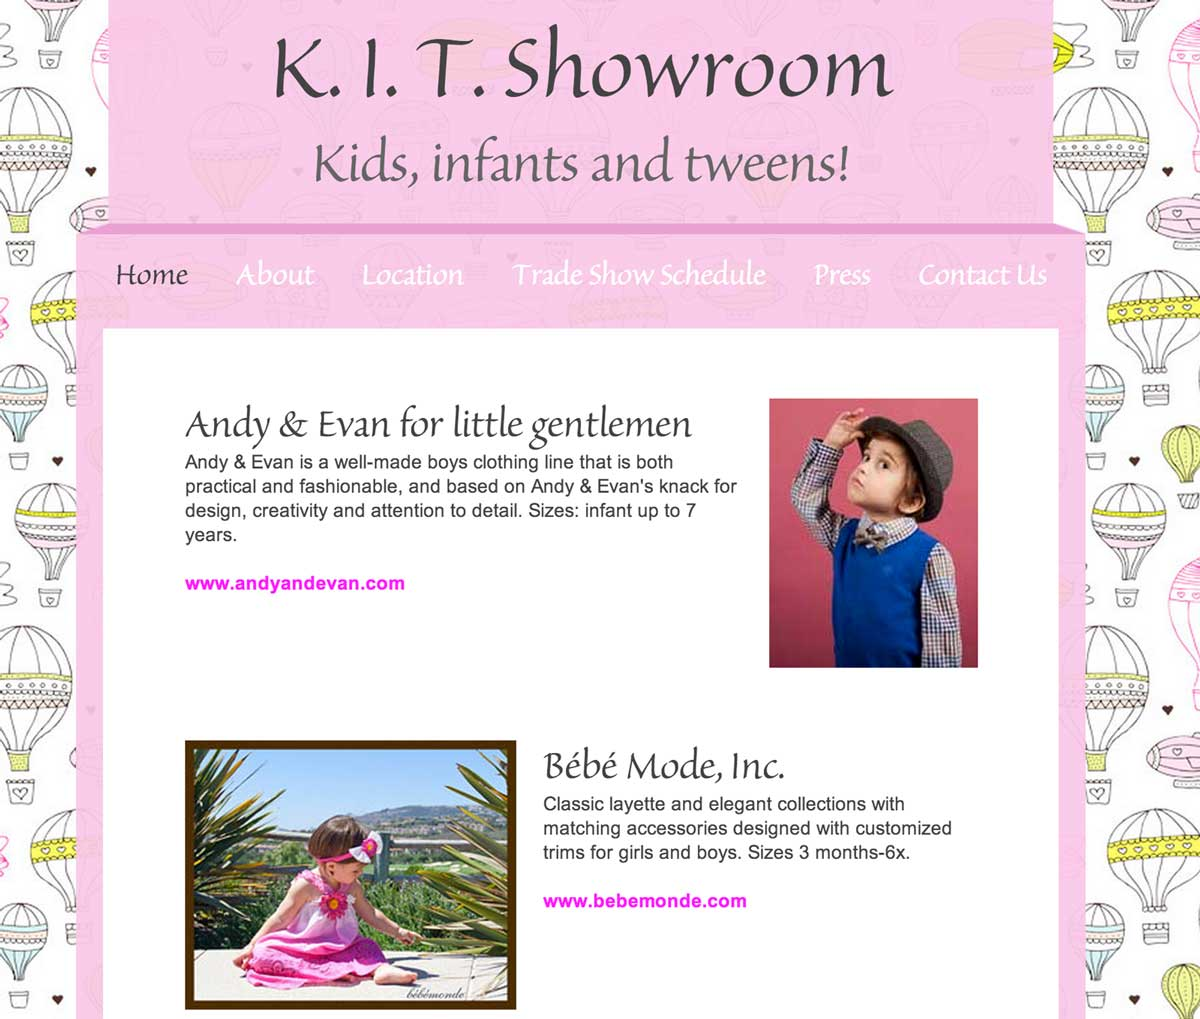 KIT Showroom website